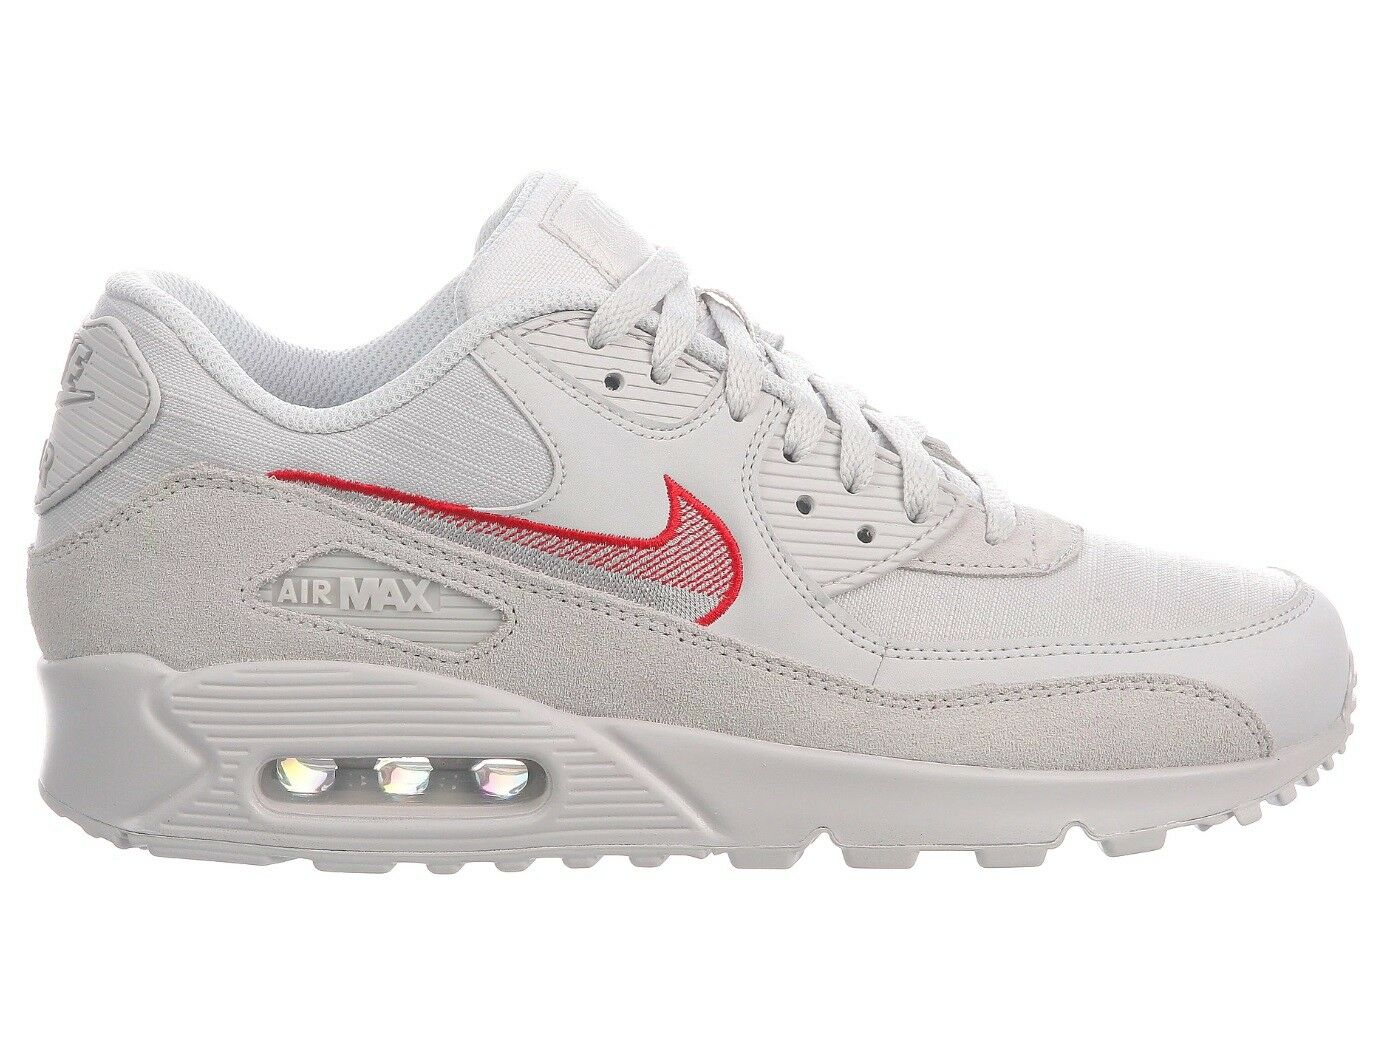 Nike Air Max 90 Leather Mens AH8443-003 Vast Grey Red Running Shoes Size 7.5